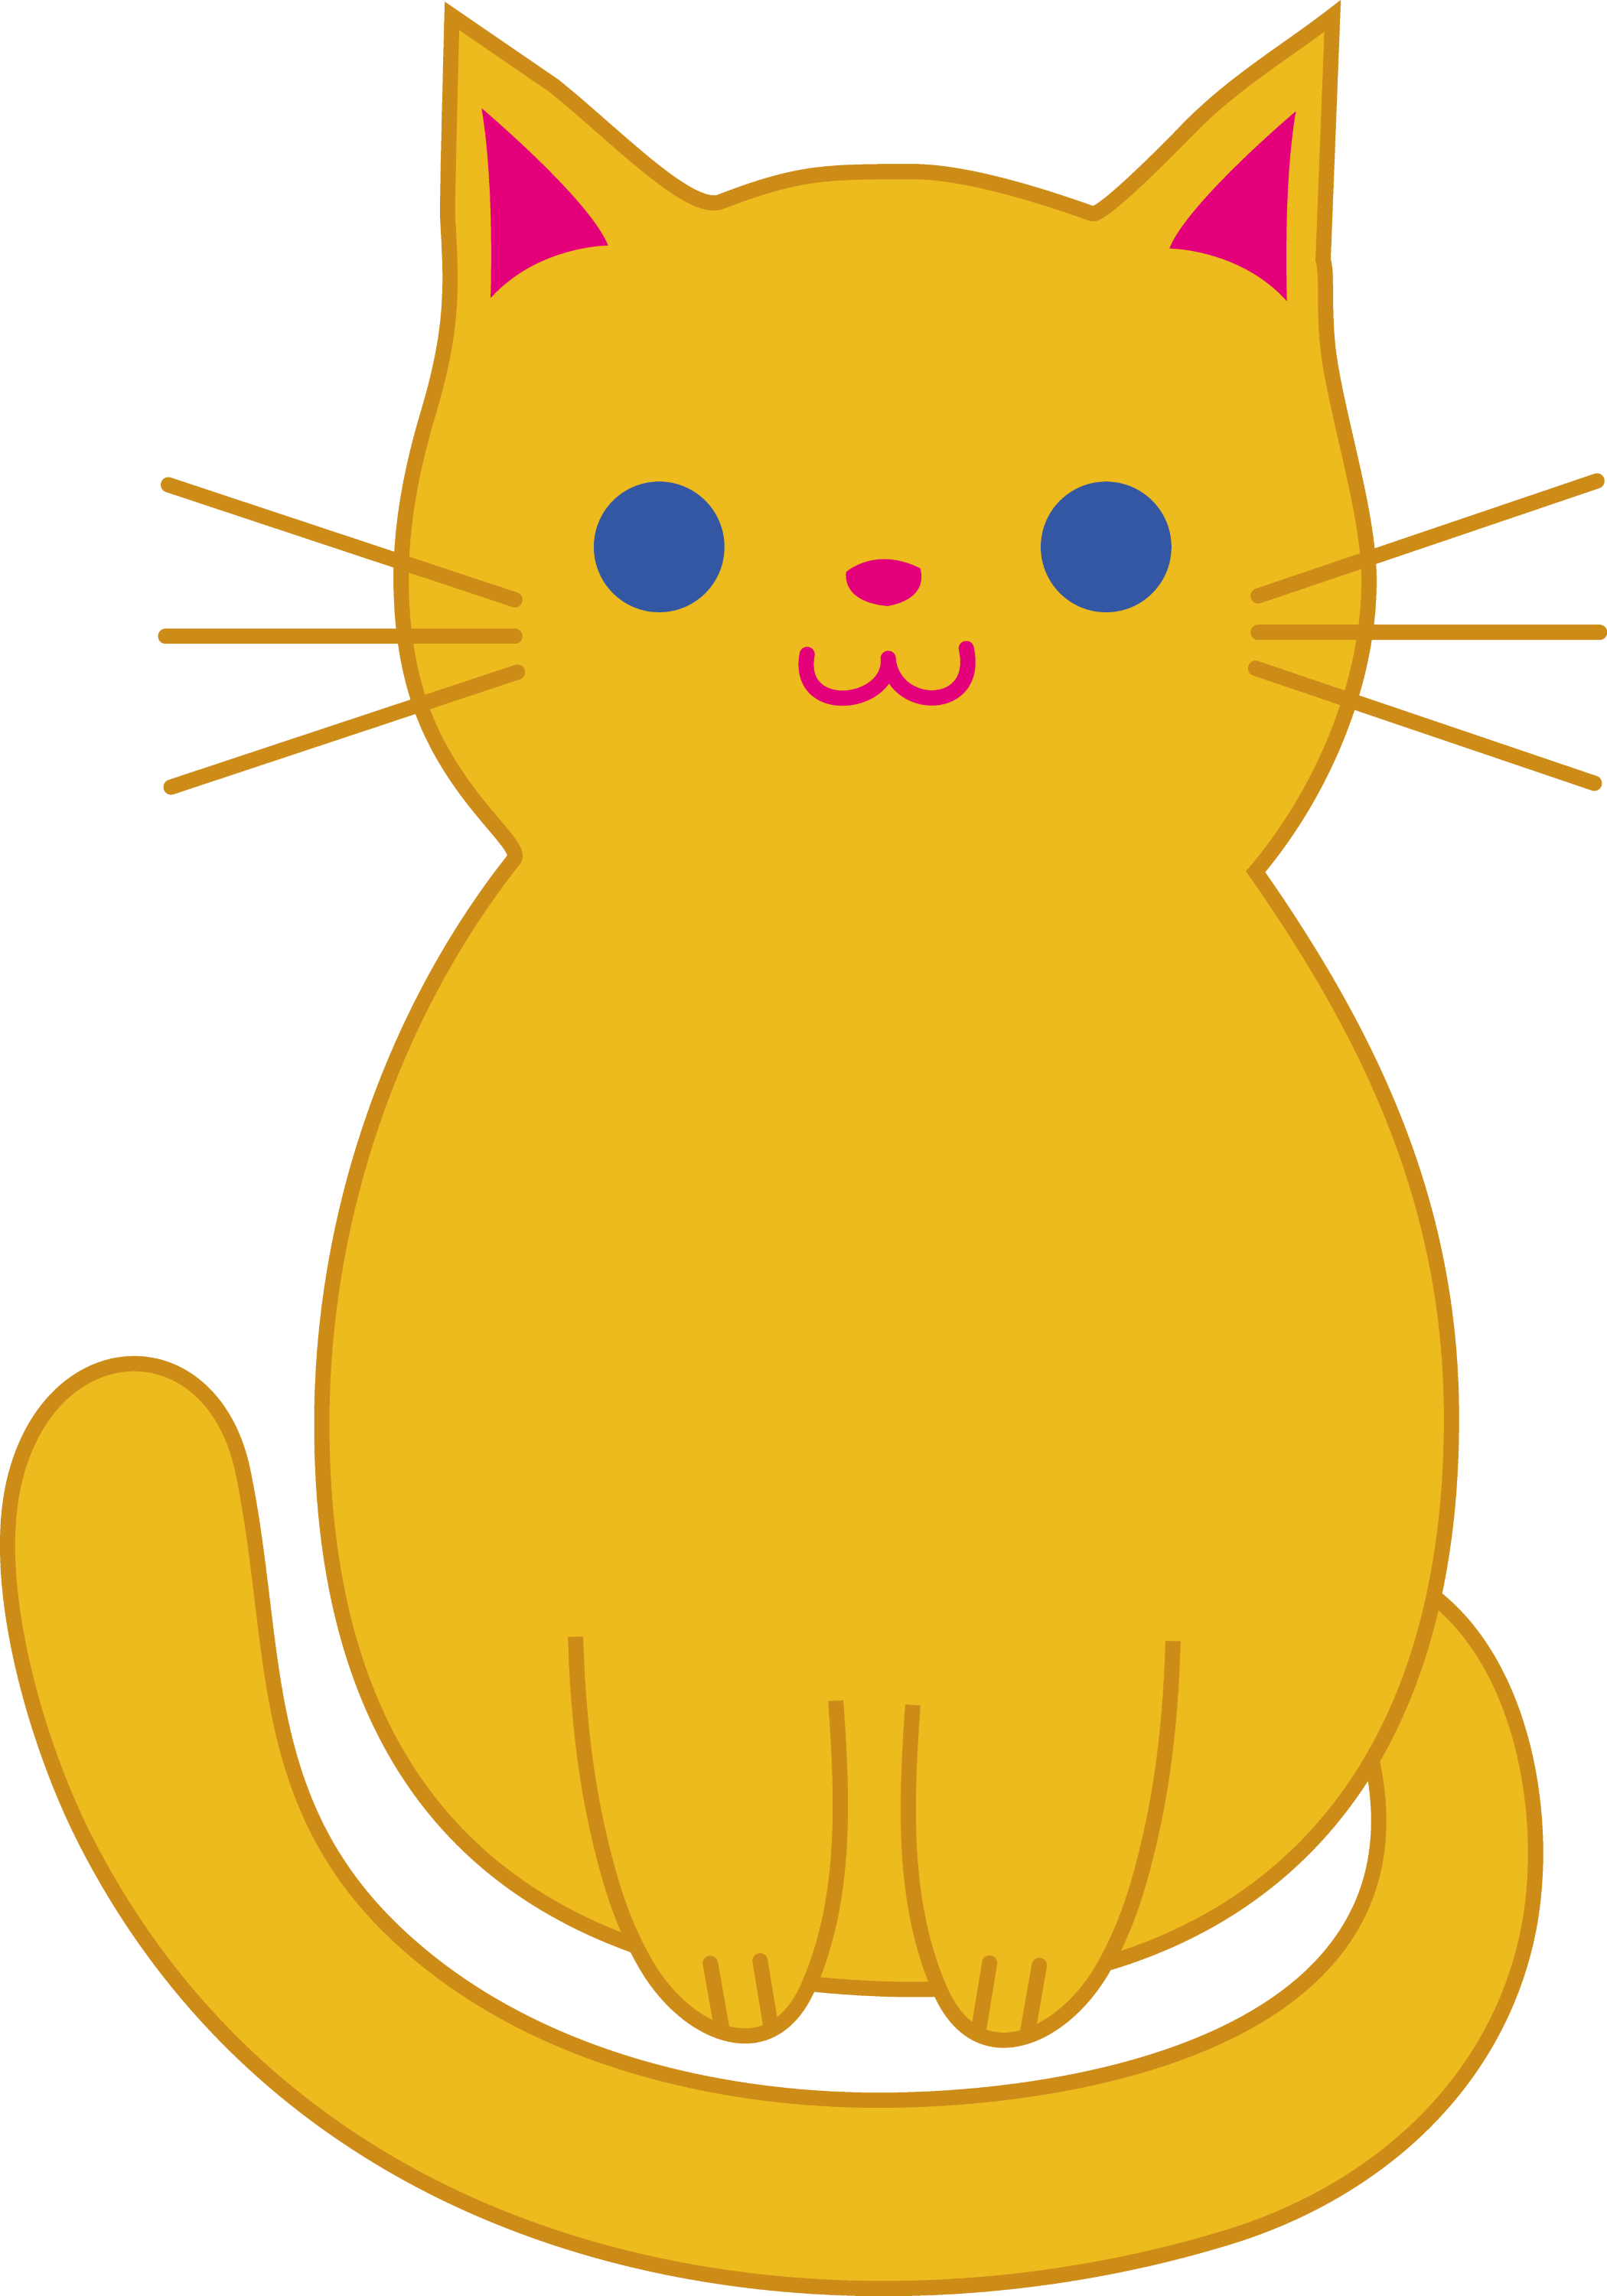 cute orange cat clip art free clip art rh sweetclipart com free cat photos clipart Cute Cat Clip Art